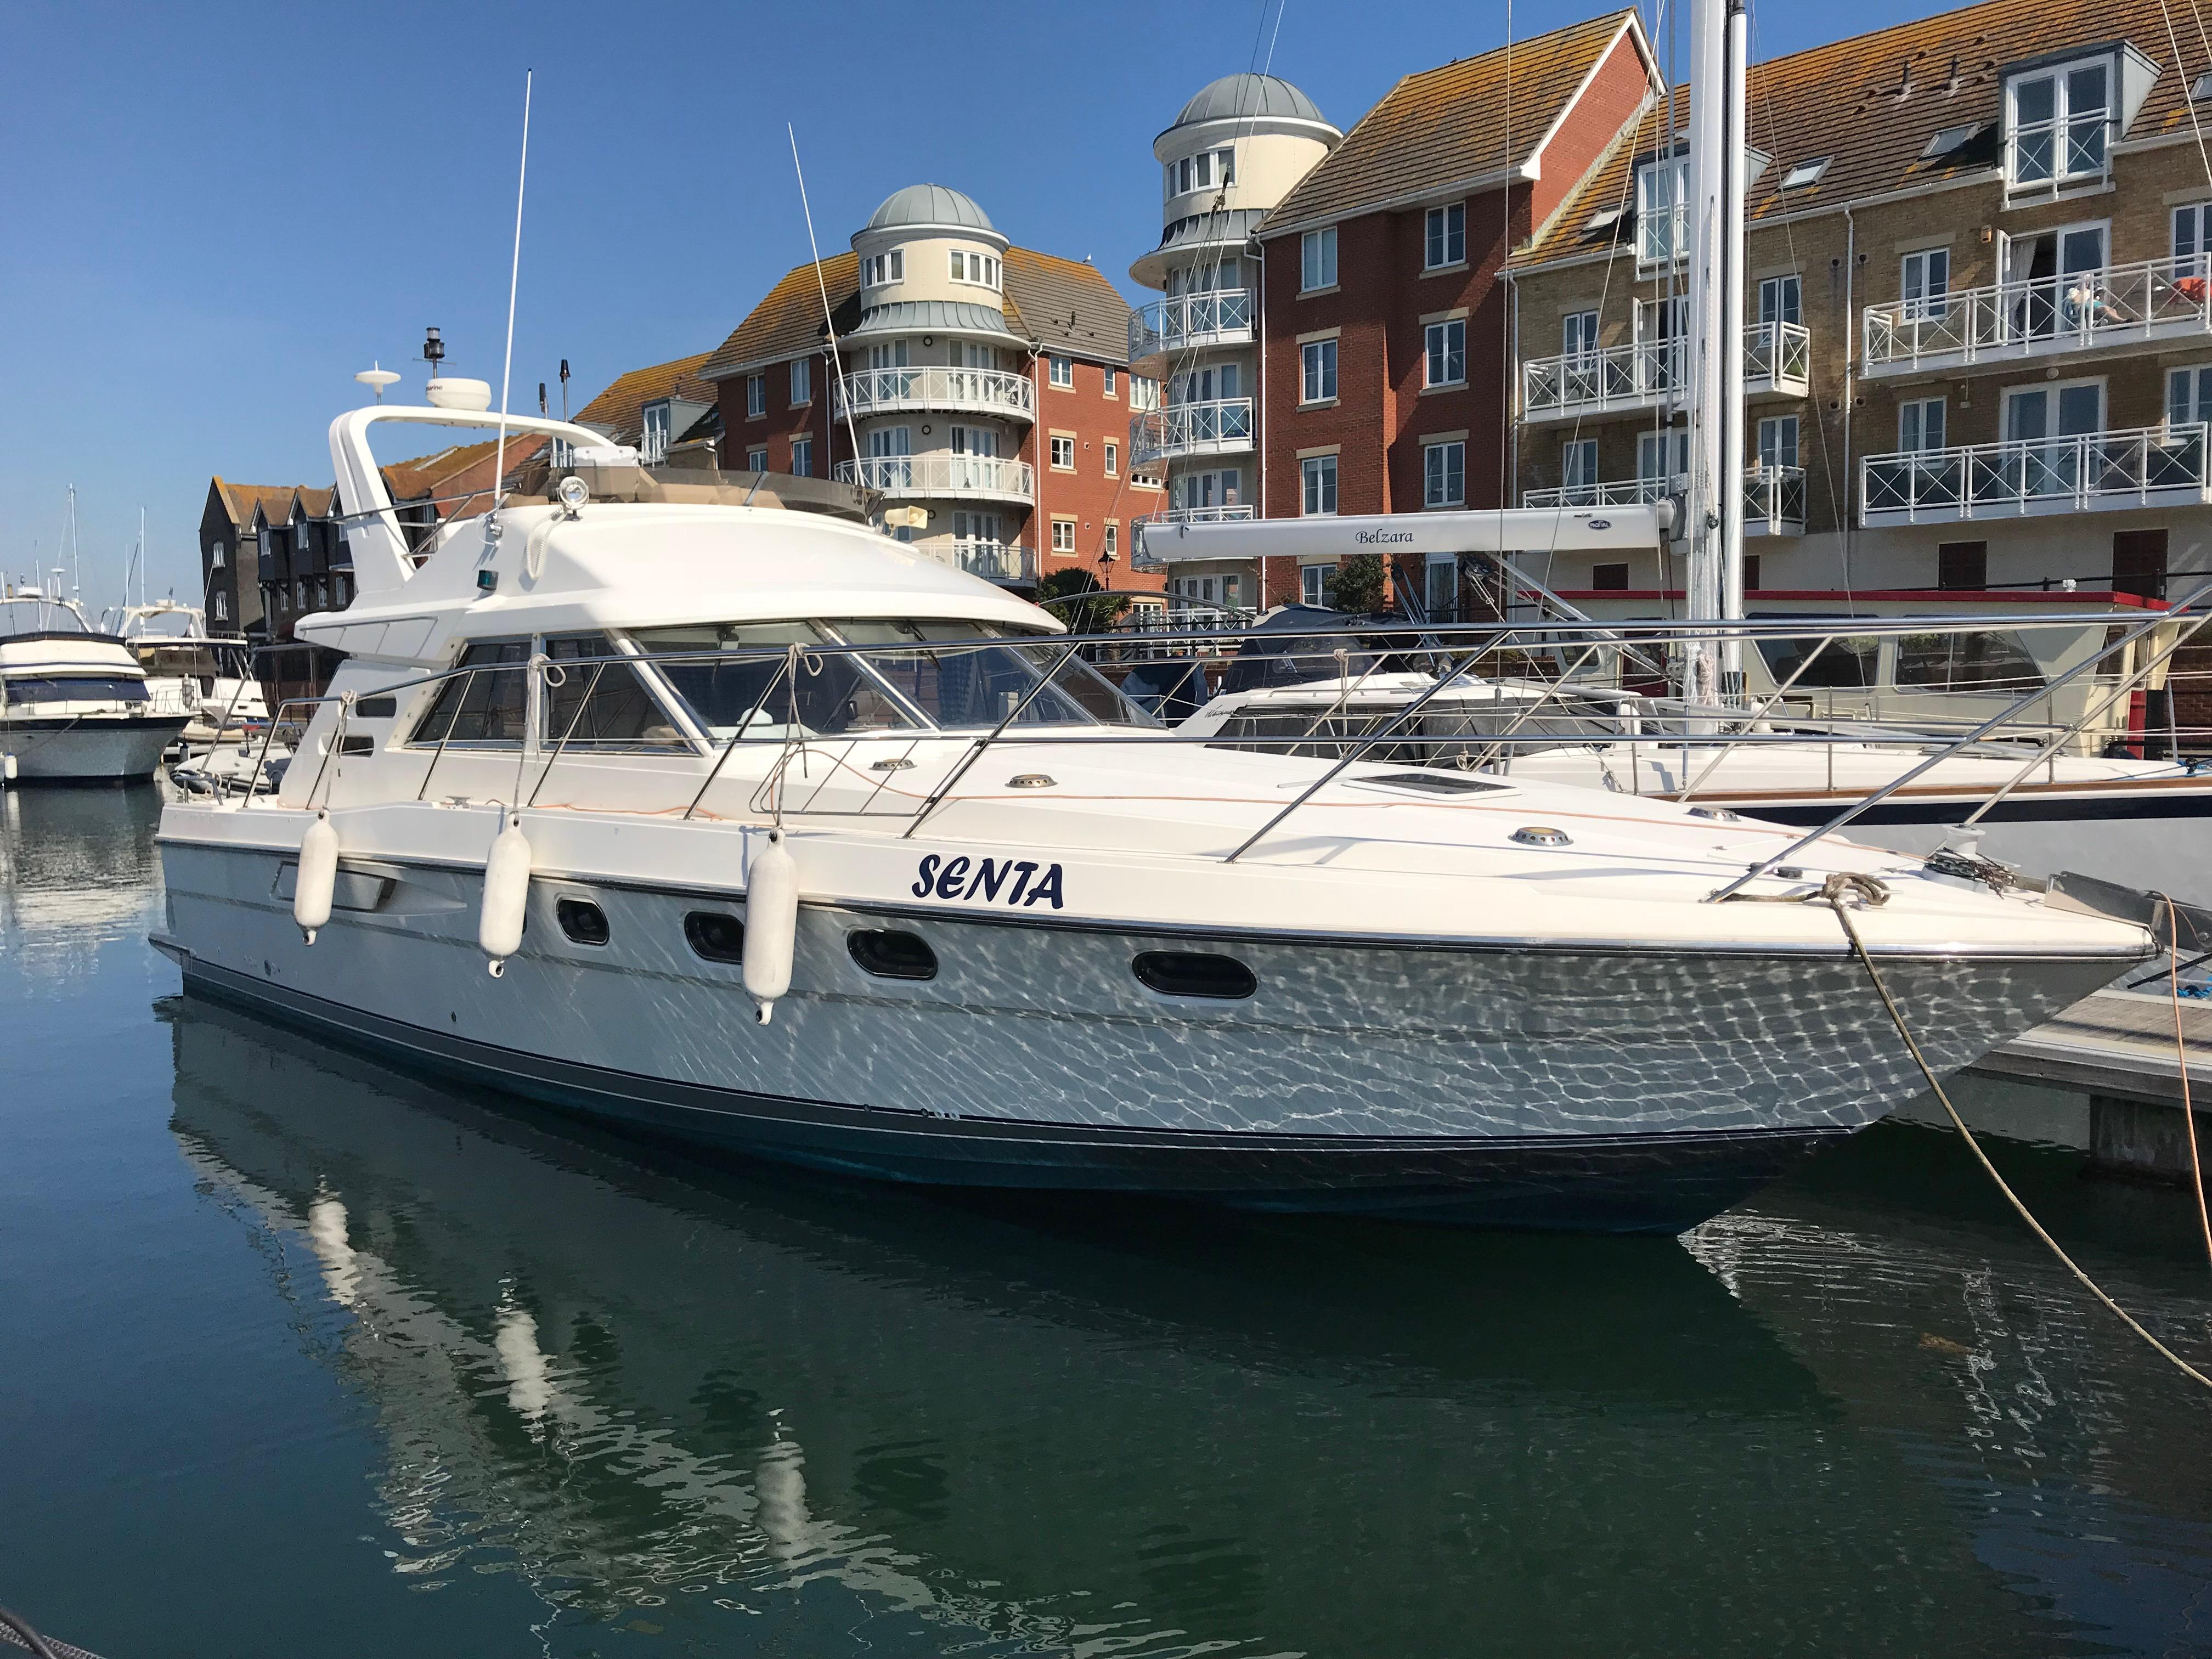 Boats for Sale Eastbourne | Bates Wharf